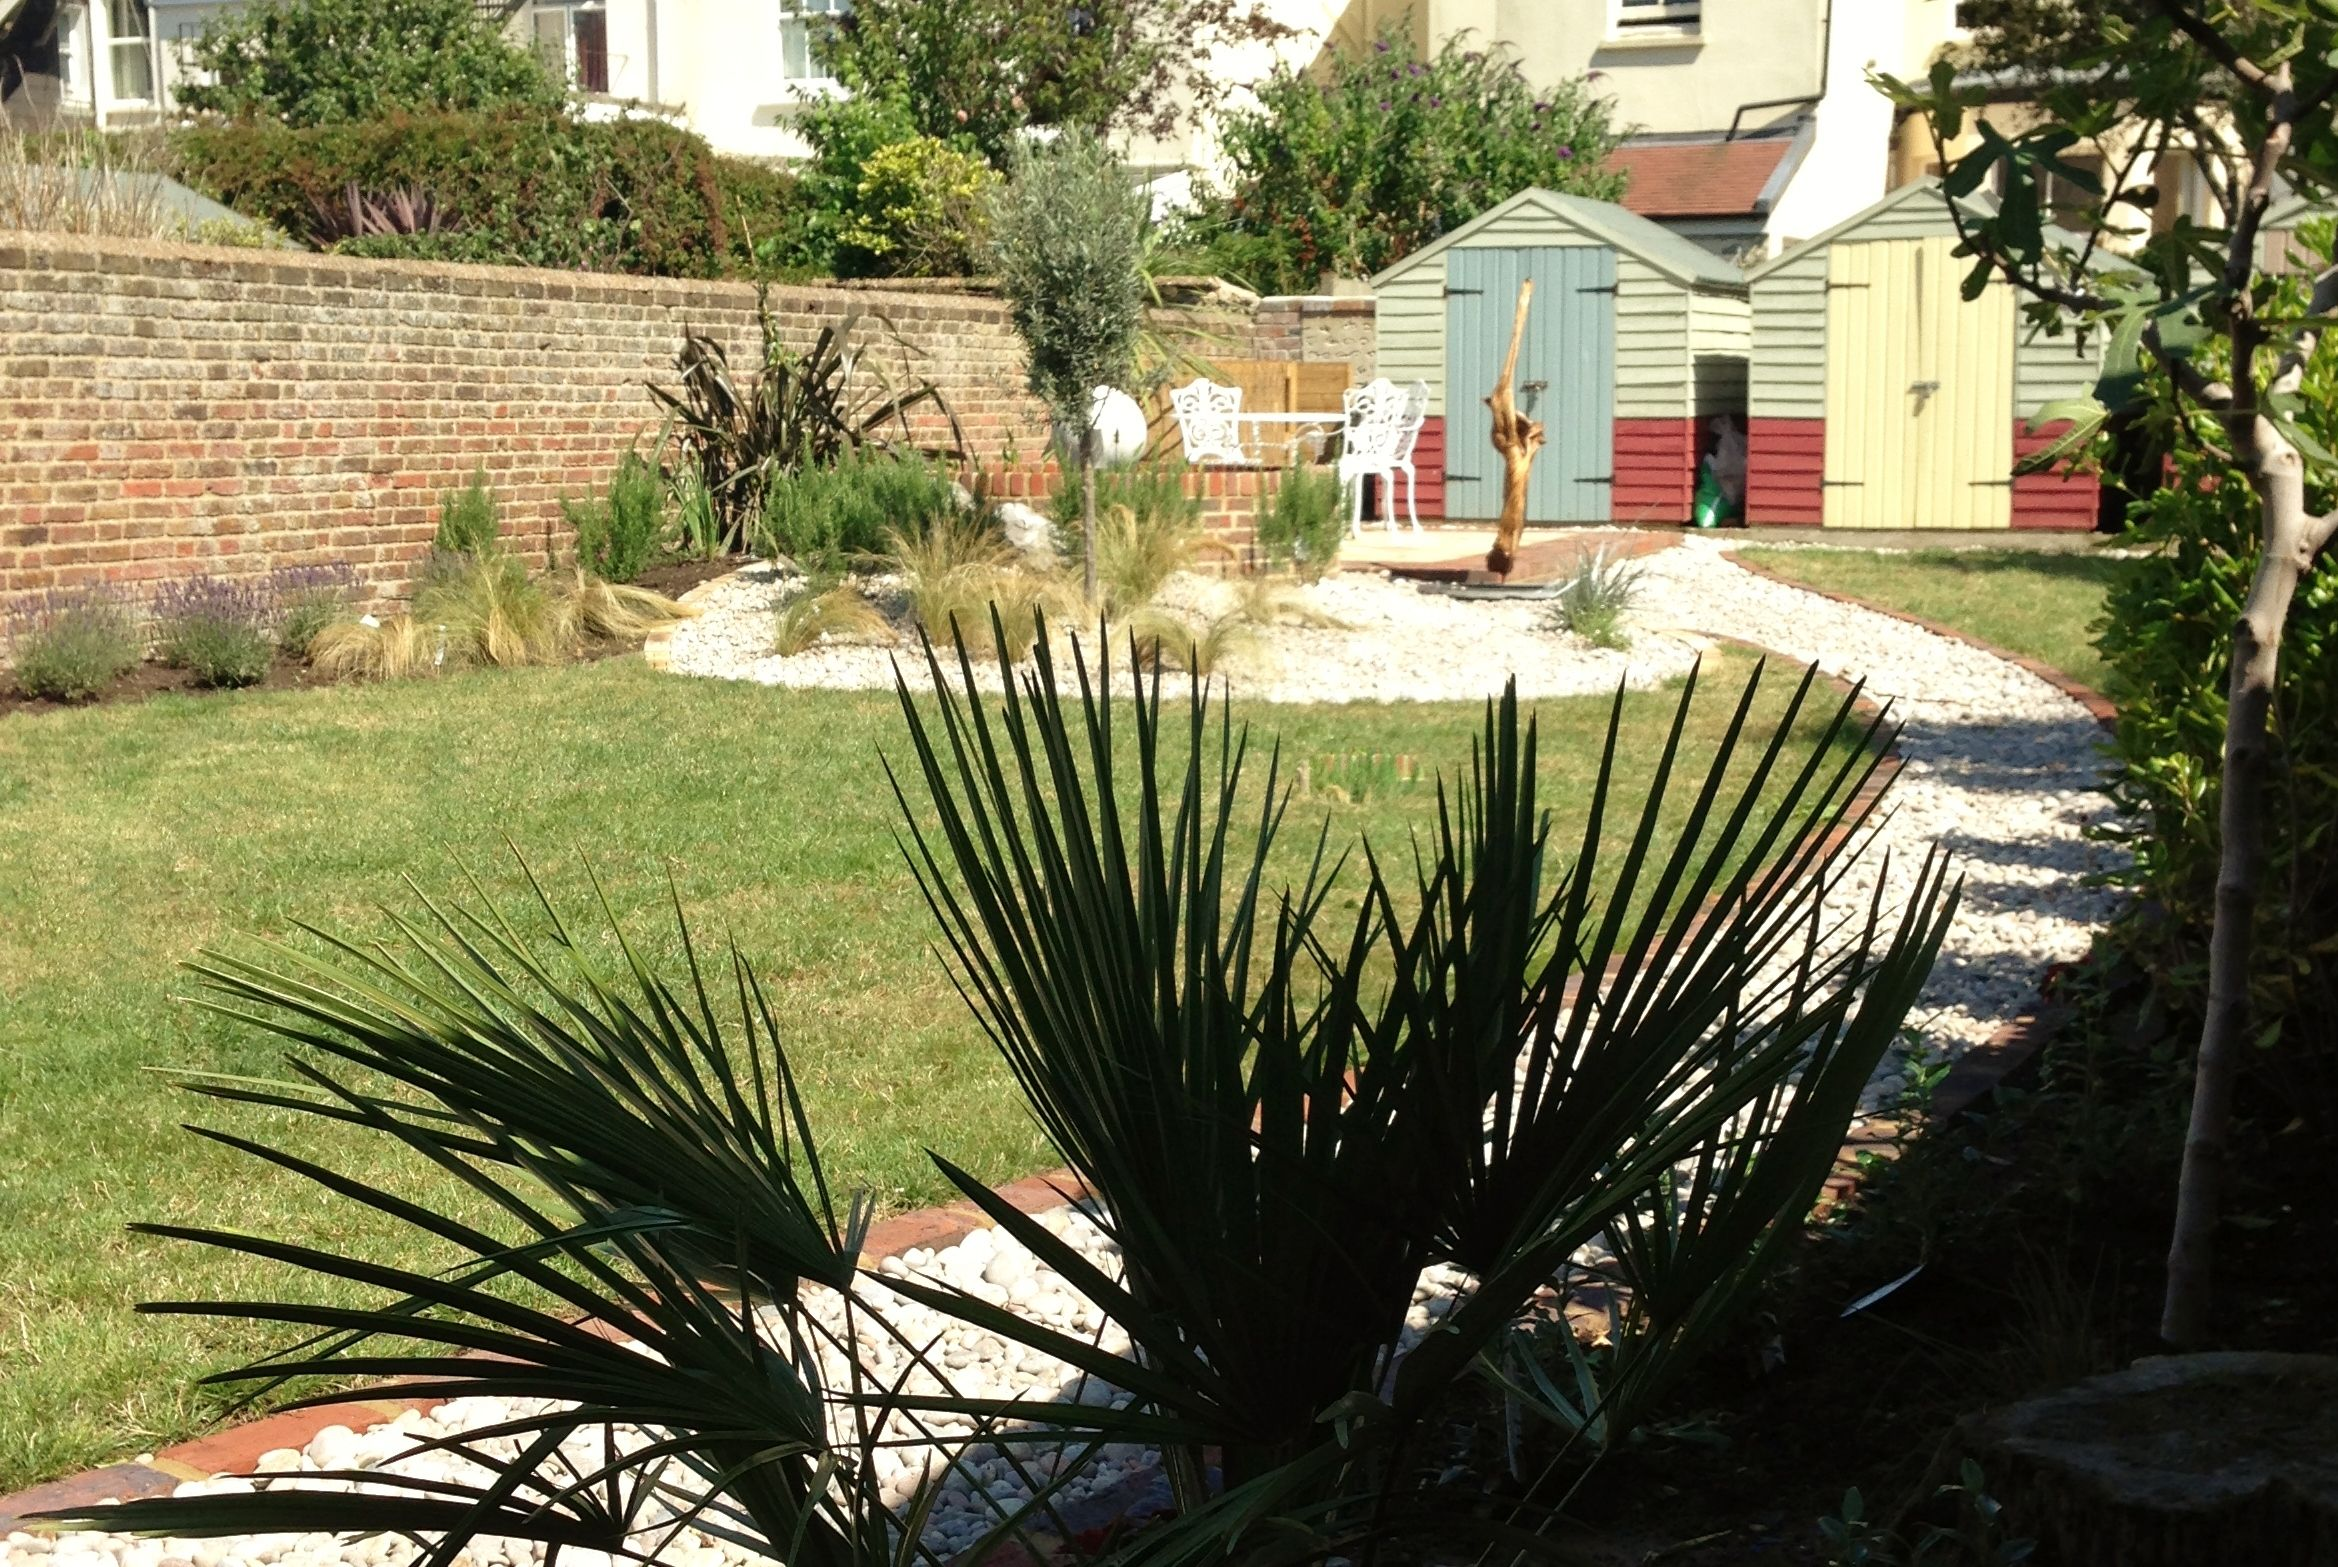 Designed town garden in Hove, Sussex with seaside theme based on ...